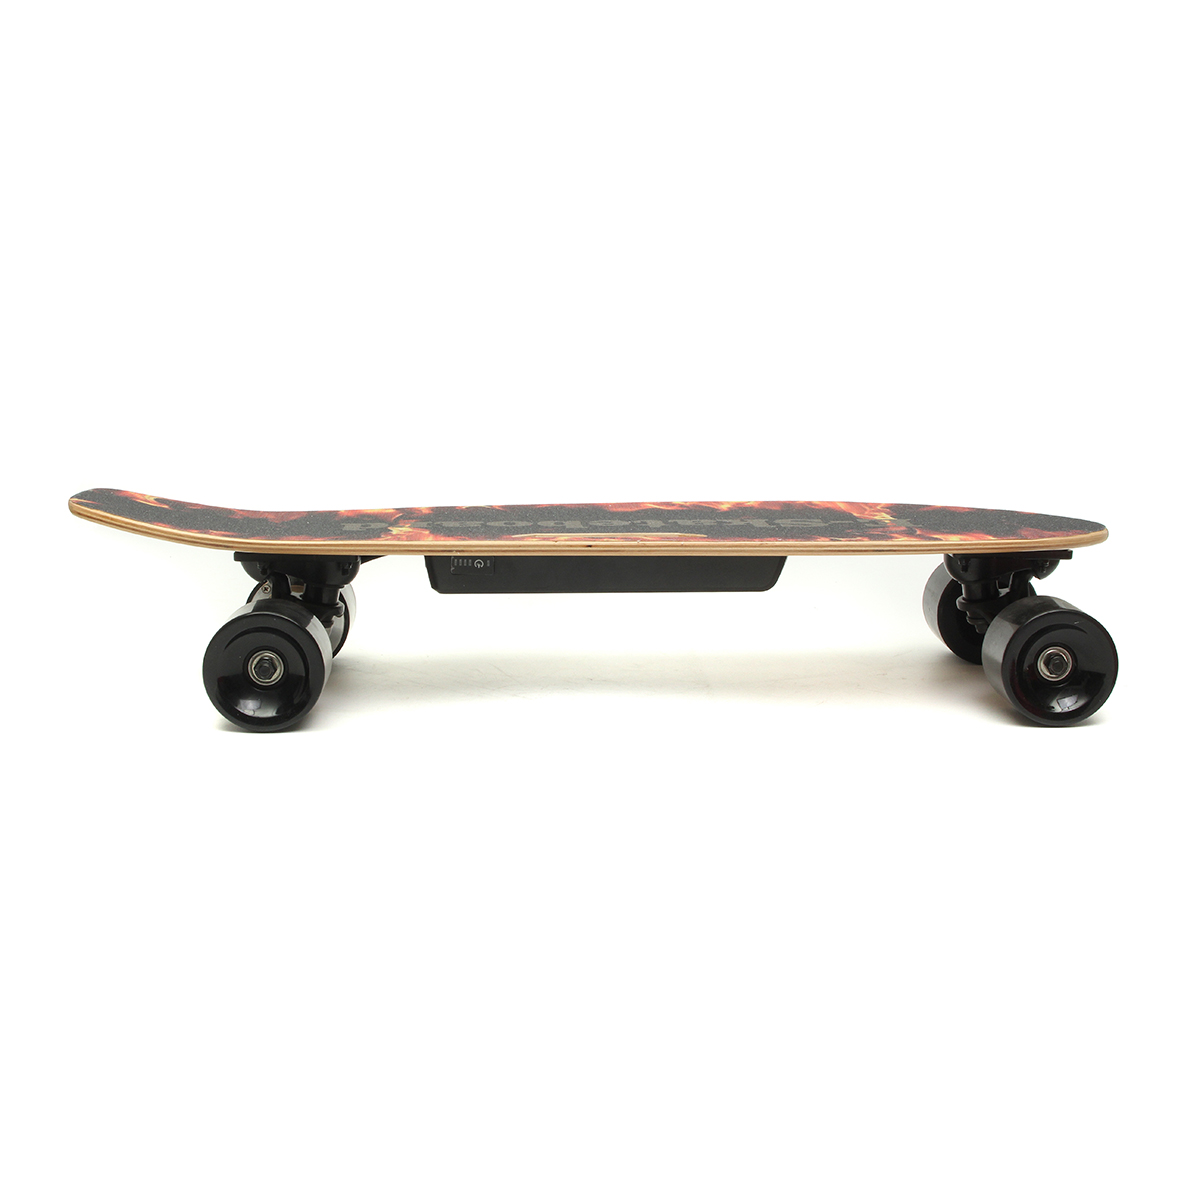 BIKIGHT 250W 18km/h Electric Skateboard Wireless Remote Control Longboard Skate Complete Deck Longboard Hoverboard For Kids Adults